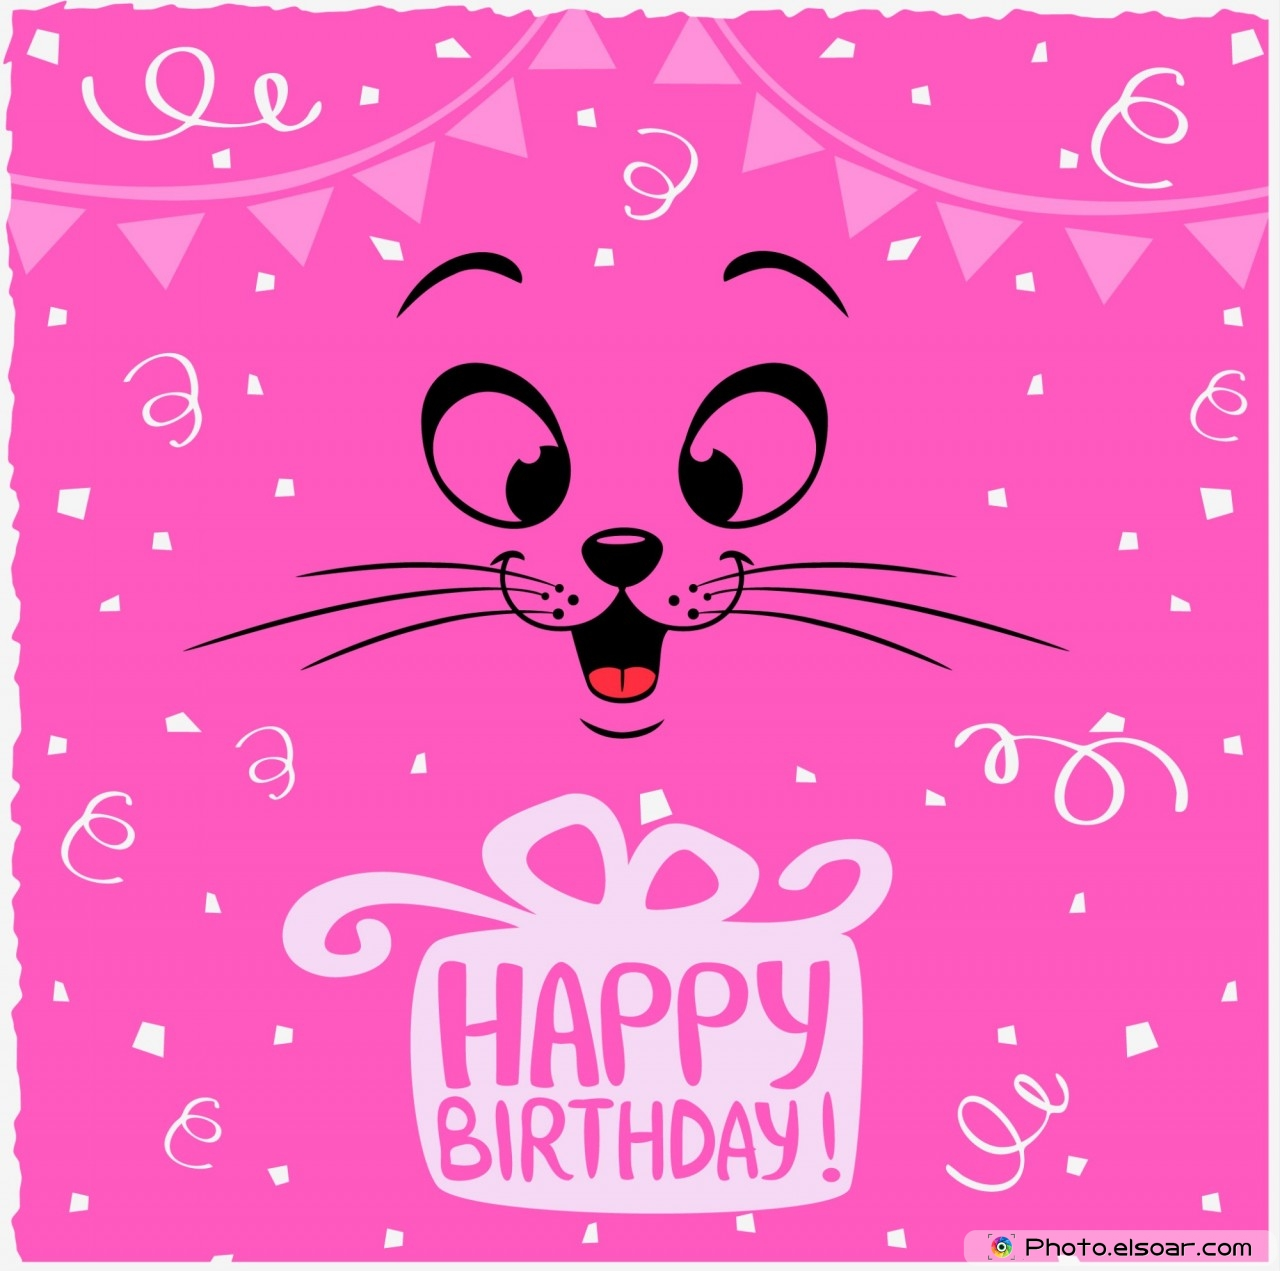 Pink Image Happy Birthday With Funny Emoticon